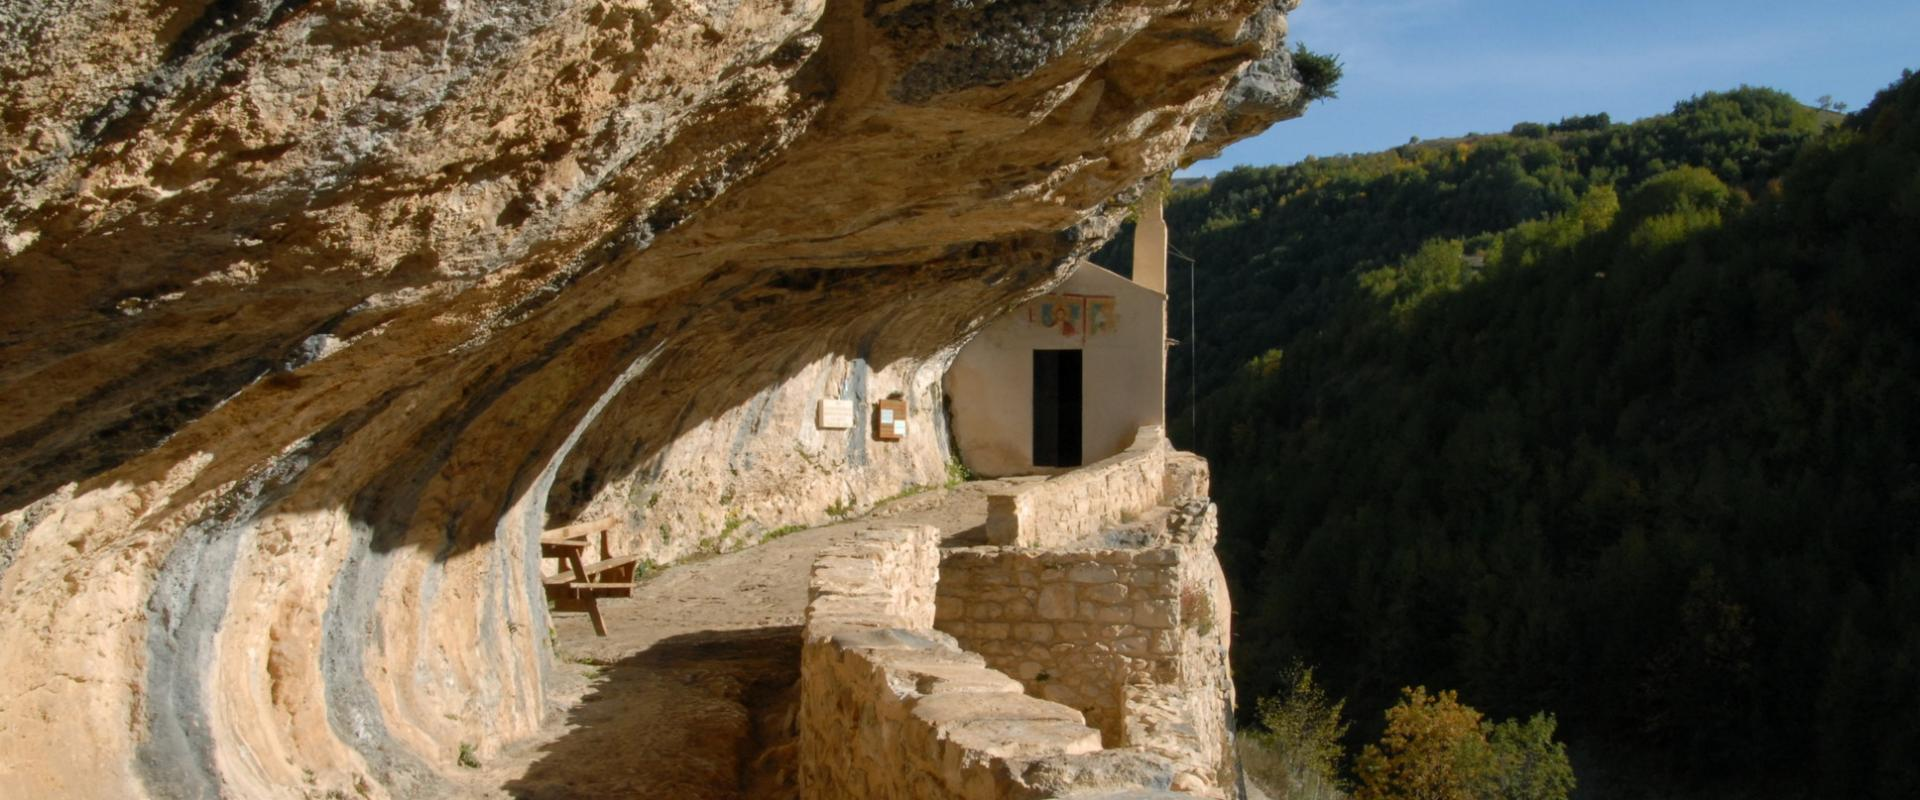 Excursion among the ancient monastry of Majella National Park and lunch